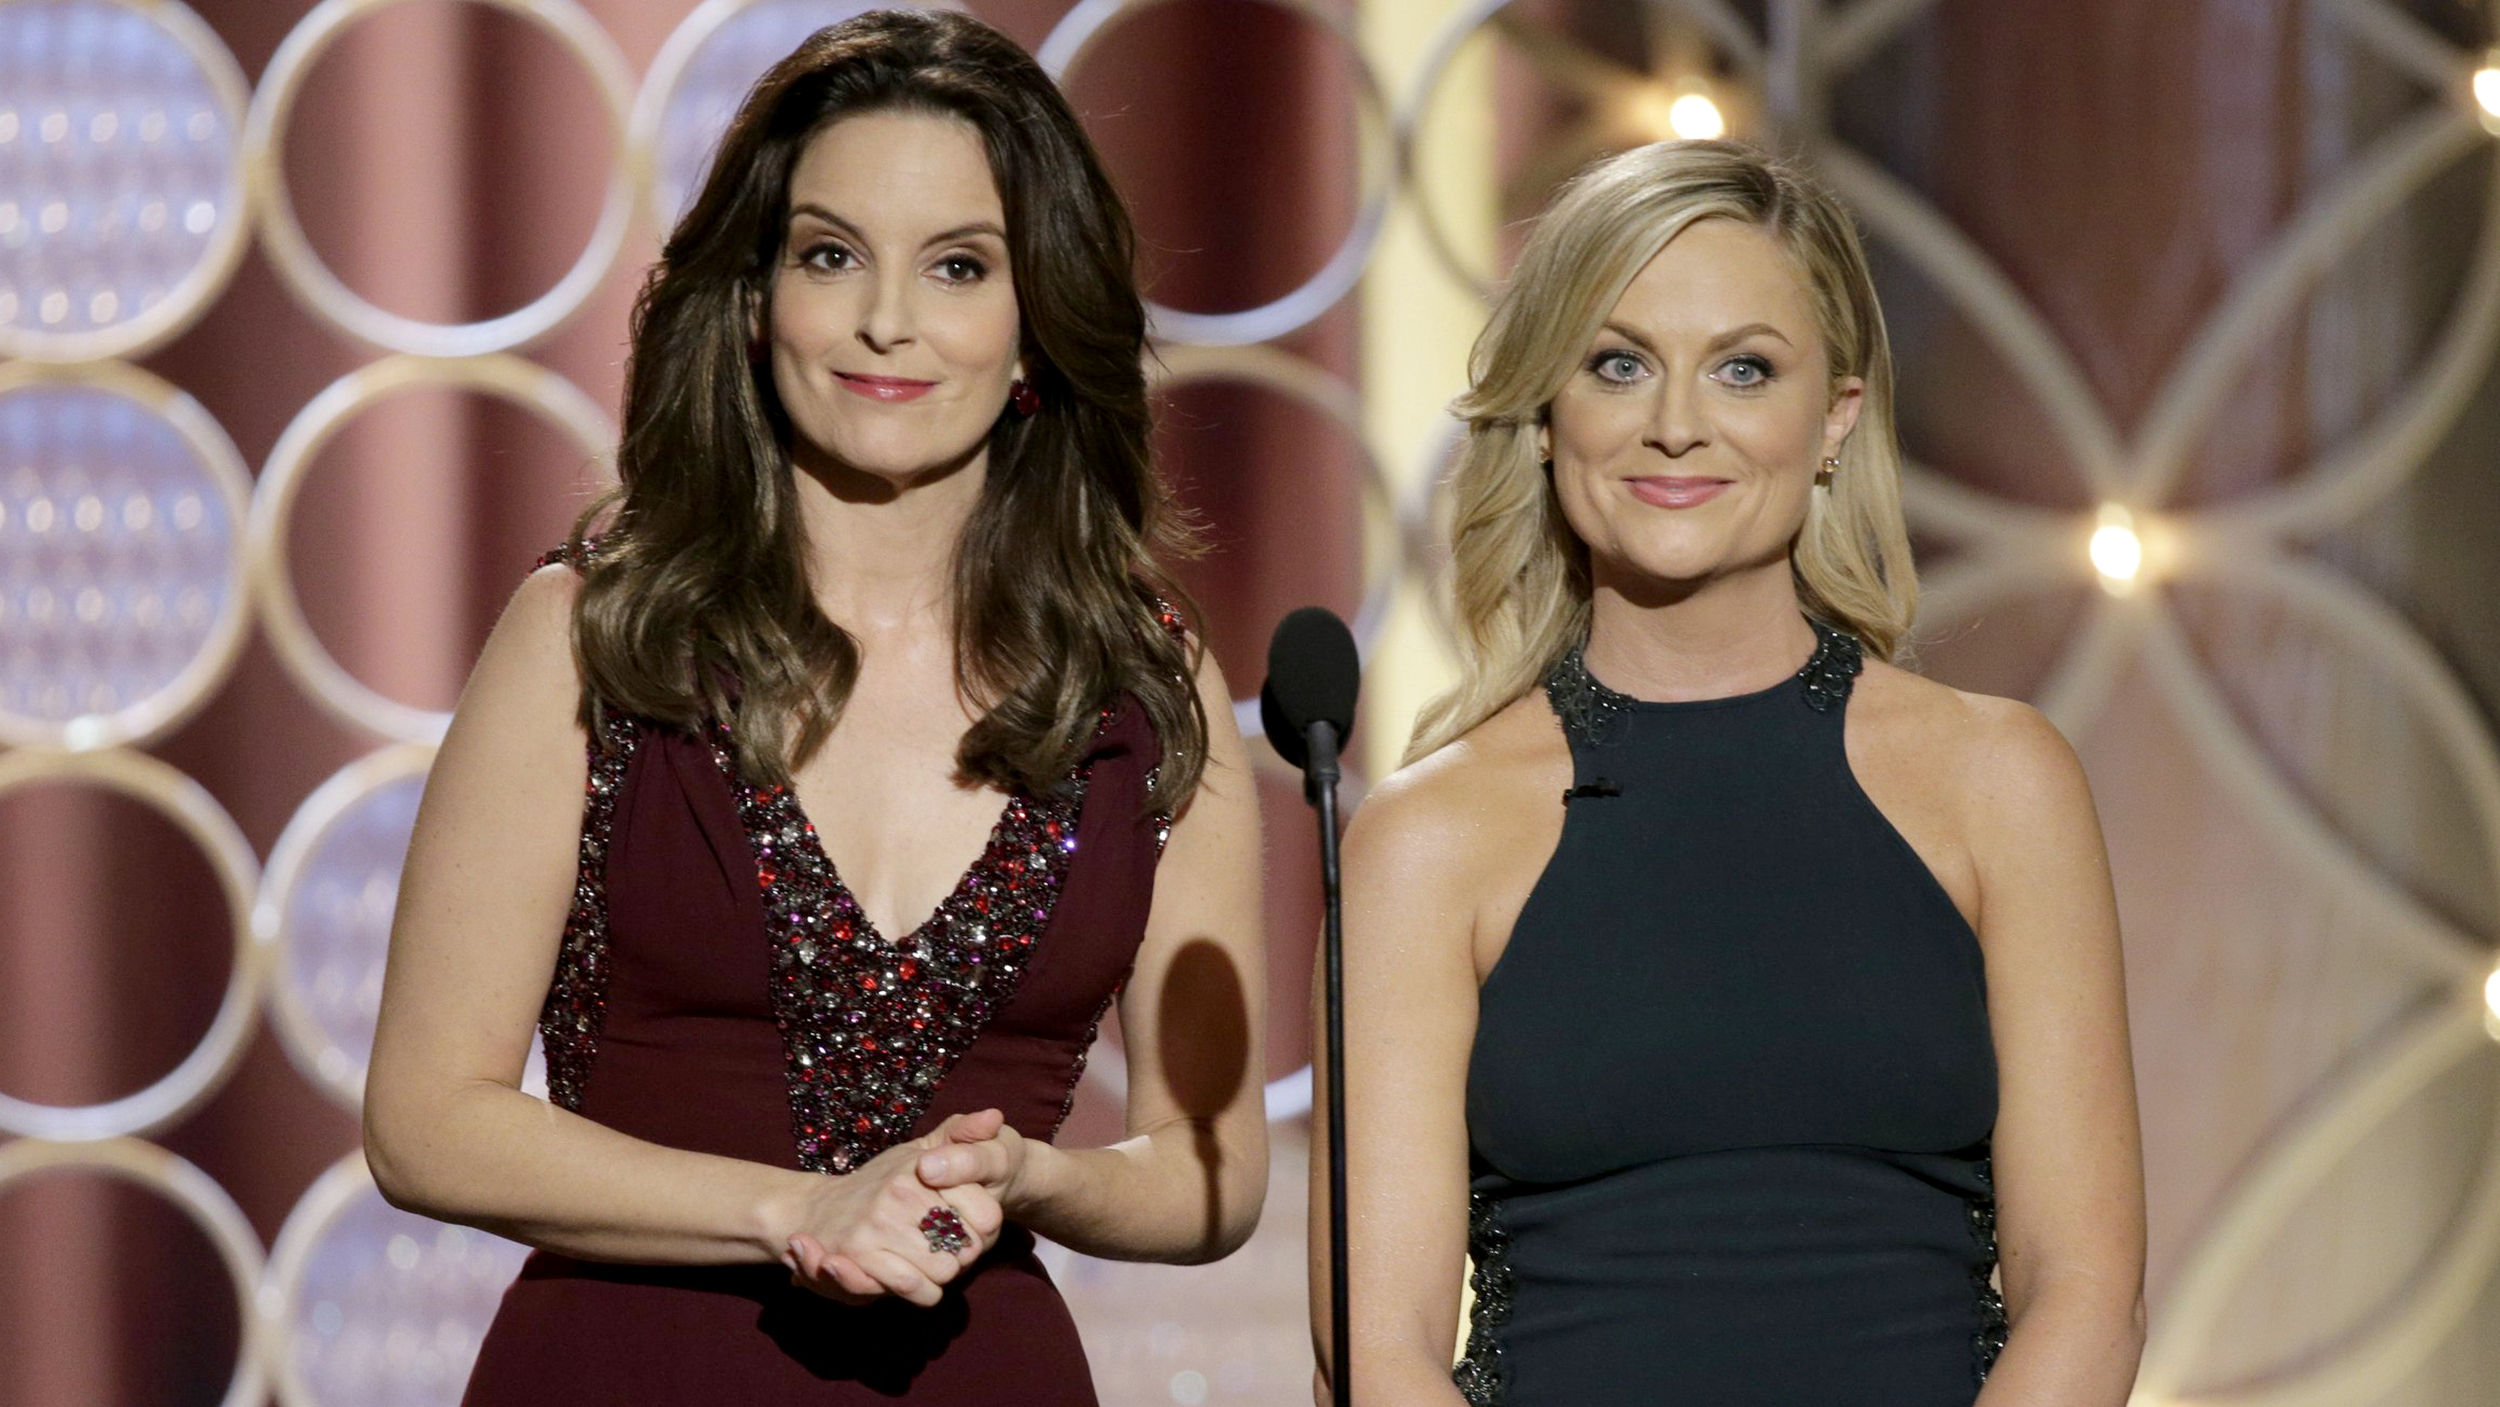 Tina Fey and Amy Poehler Asked to Host Golden Globes Again recommendations